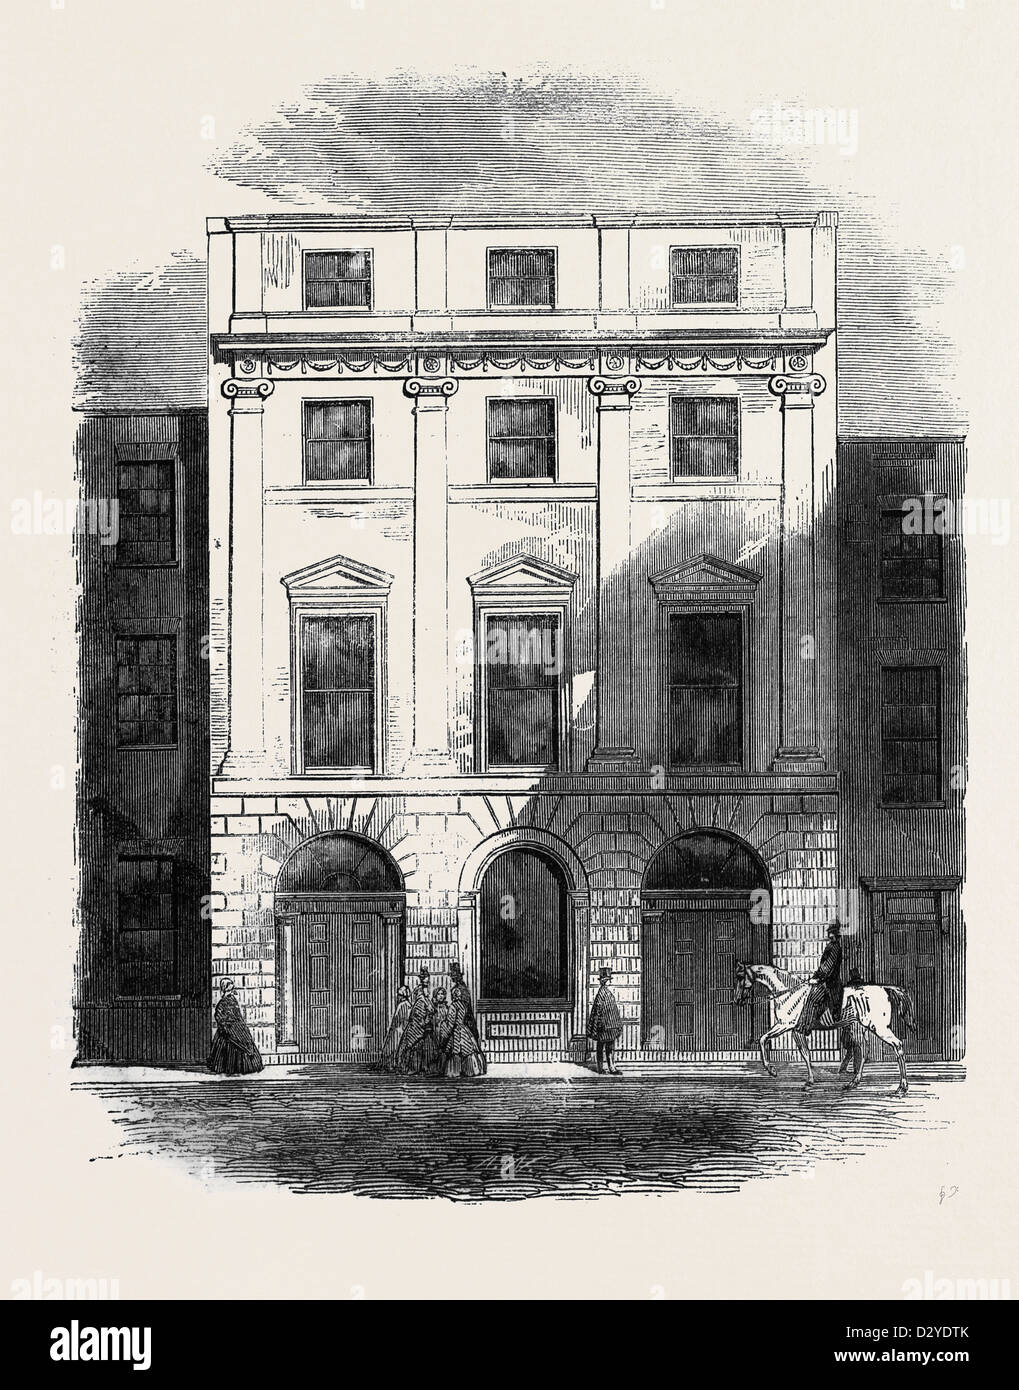 PREMISES OCCUPIED BY THE ARCHITECTURAL SOCIETIES OF LONDON CONDUIT STREET - Stock Image